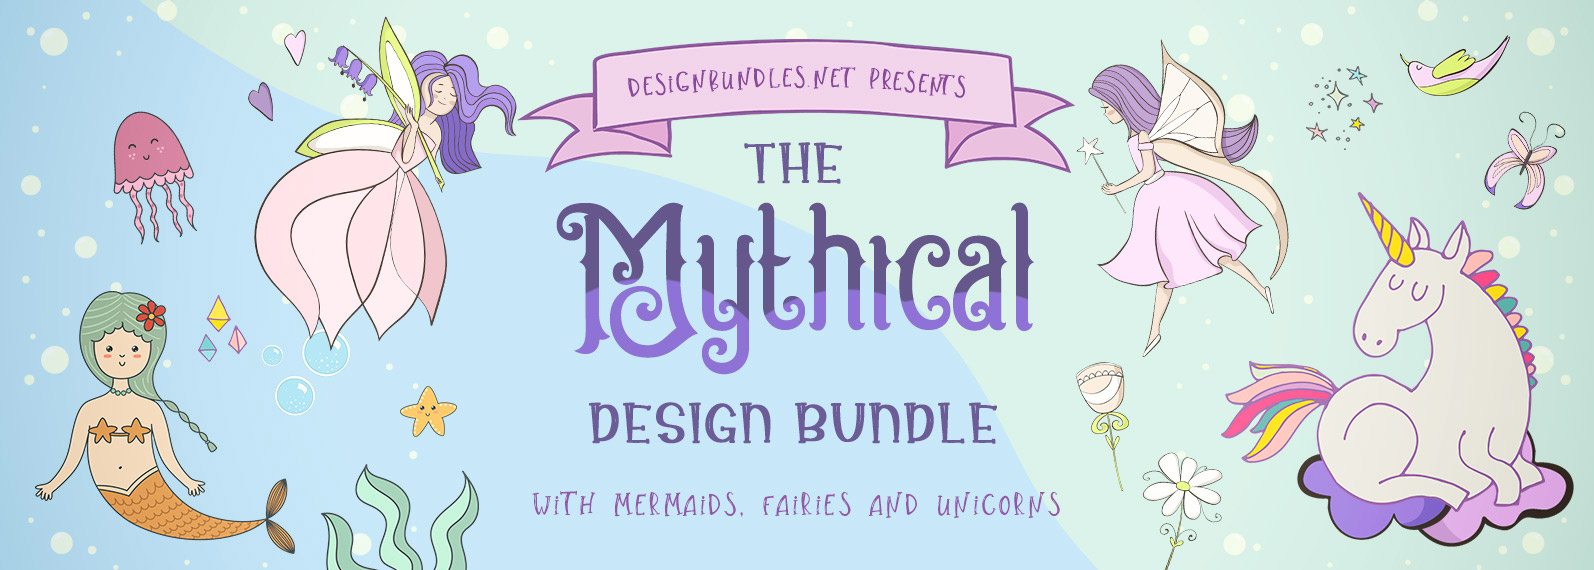 The Mythical Design Bundle Cover